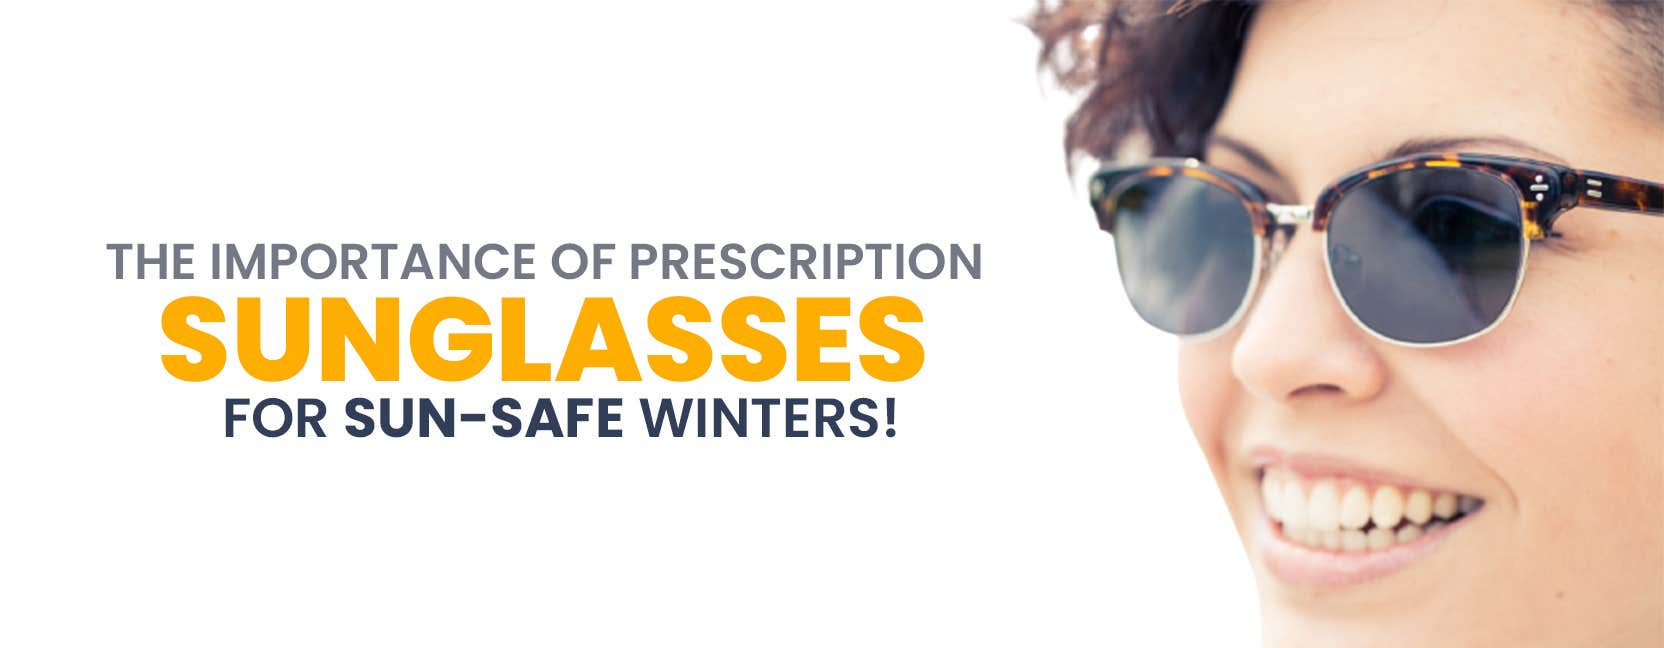 The Importance of Prescription  Sunglasses For Sun-Safe Winters!